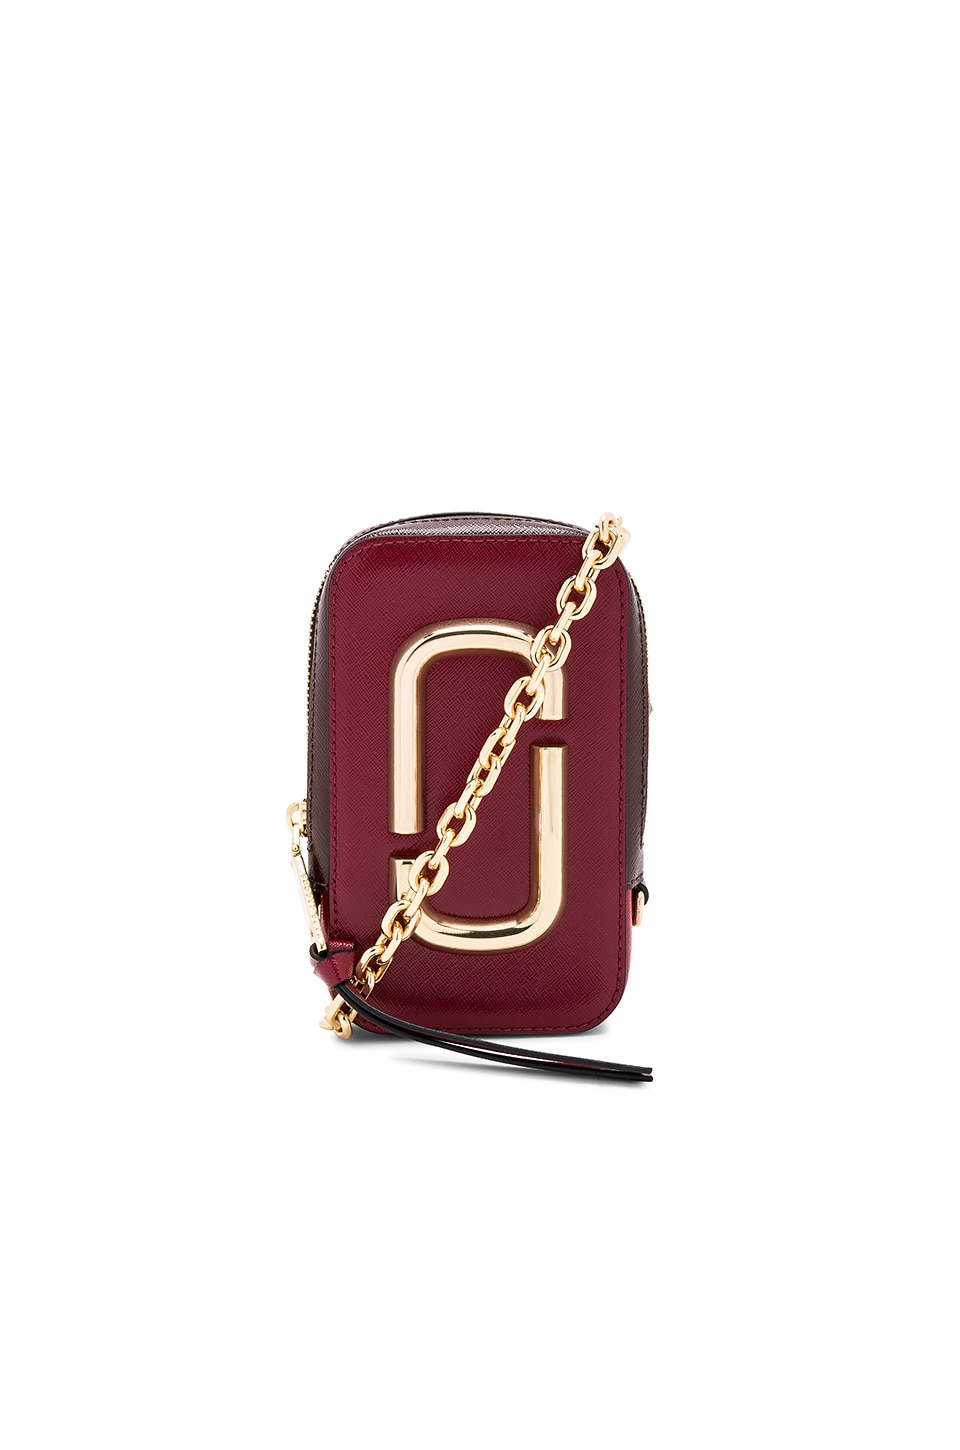 Marc Jacobs Hot Shot Camera Bag in Deep Maroon